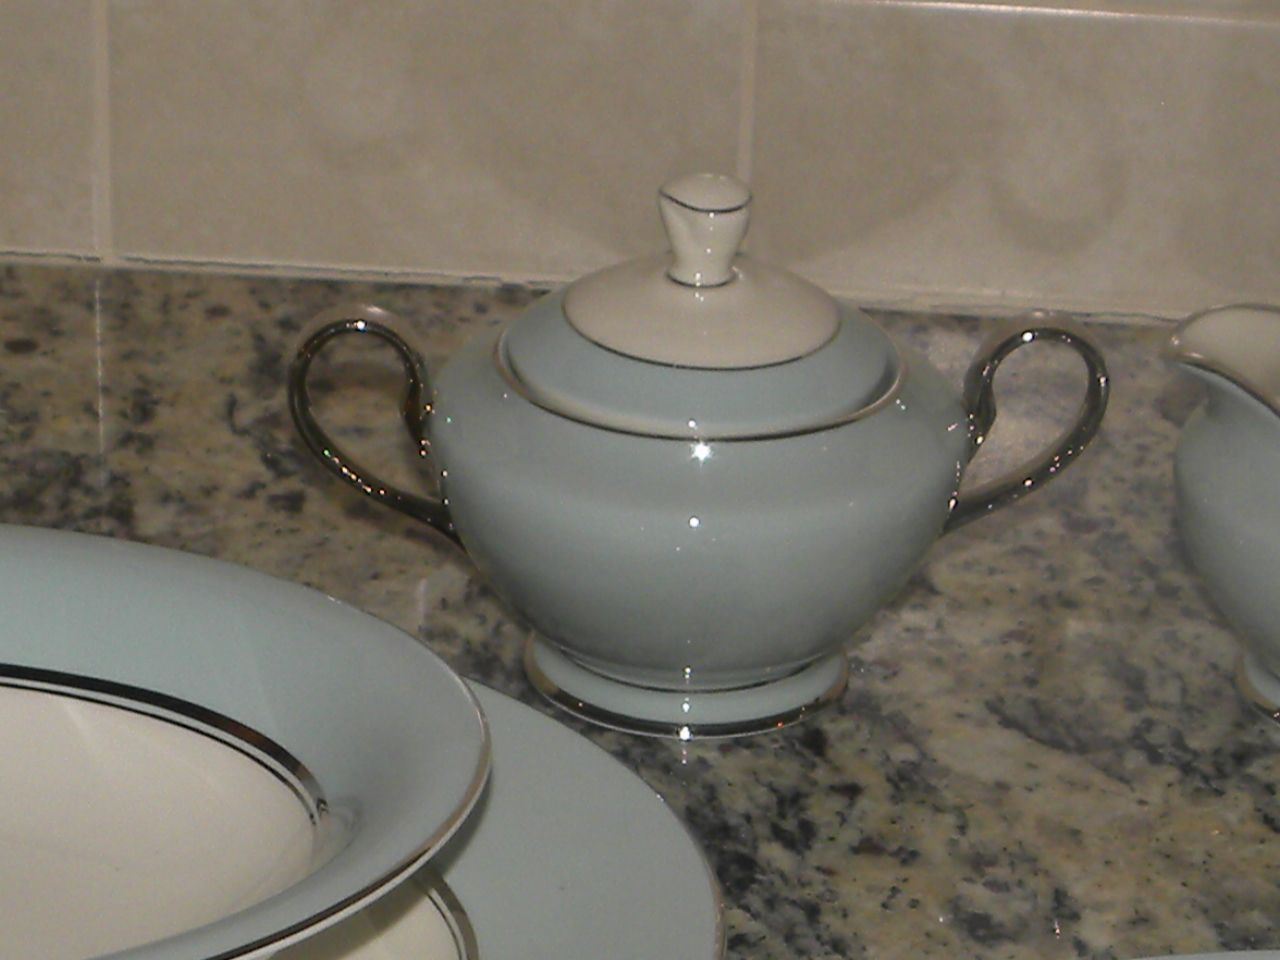 This is part of my fine china set that was given to me by my late Aunt Marilyn, the Tiffany Blue is gorgeous!!